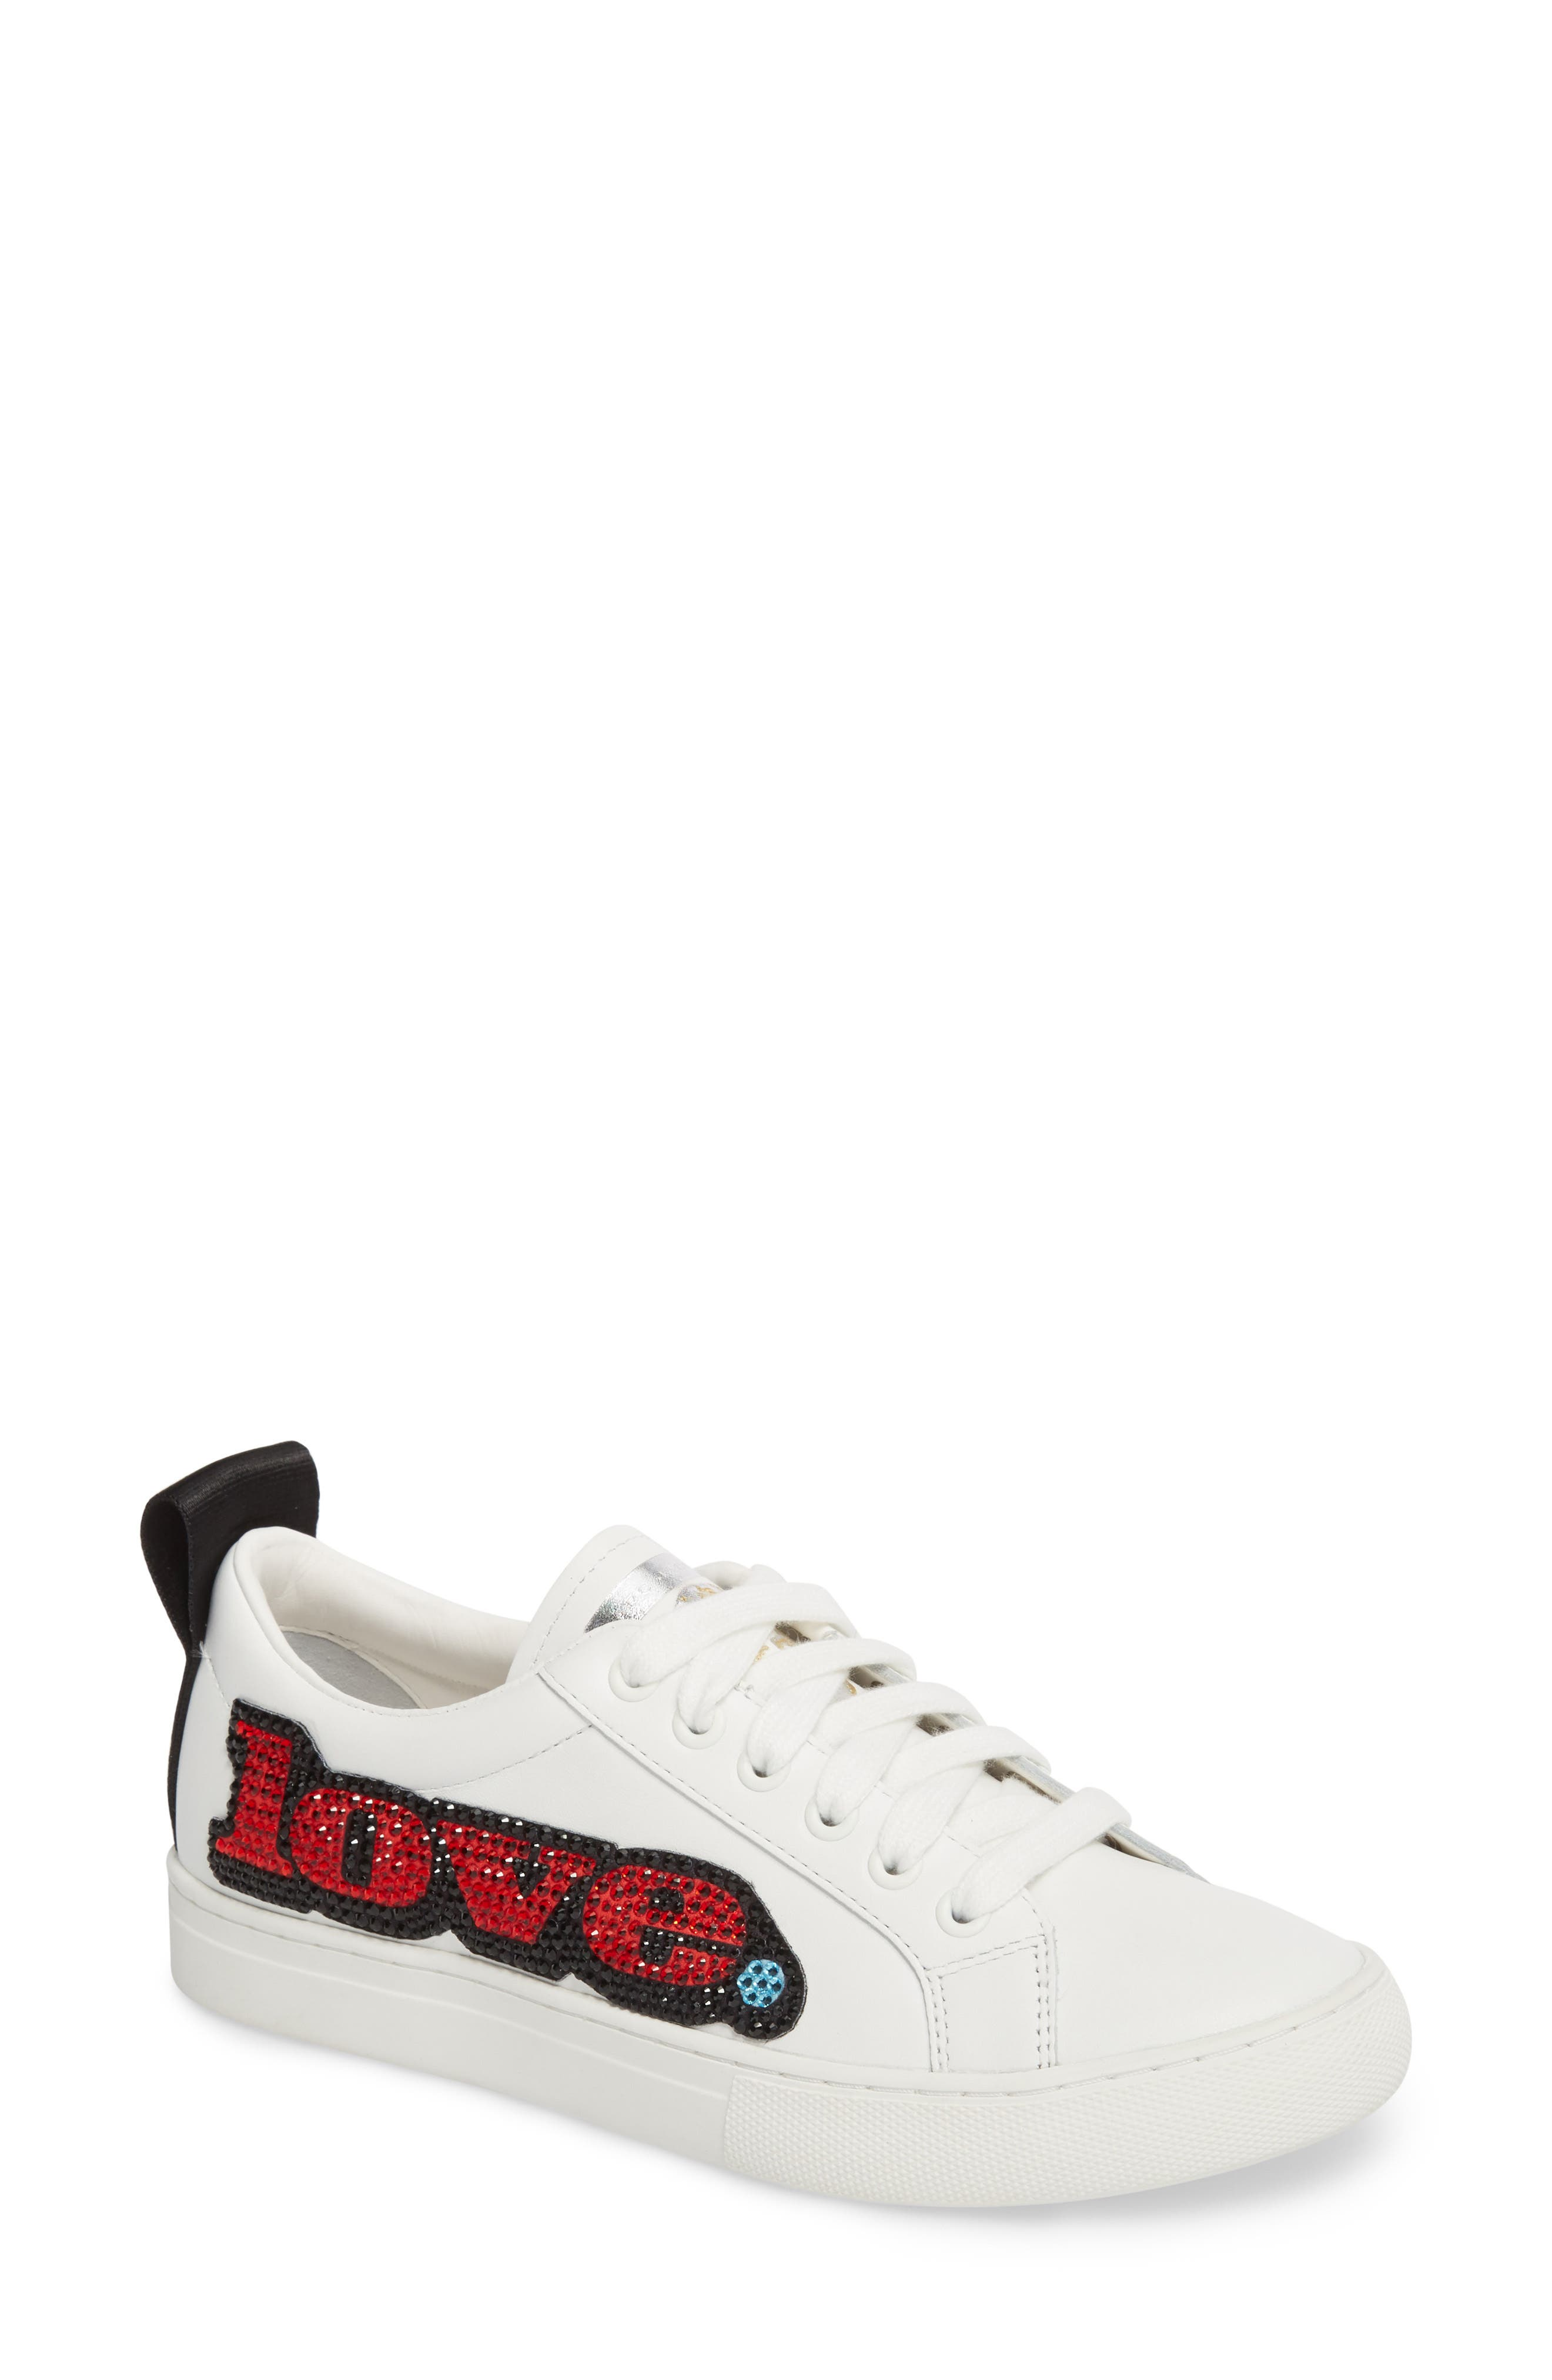 Empire Love Embellished Sneaker,                             Main thumbnail 1, color,                             White Multi